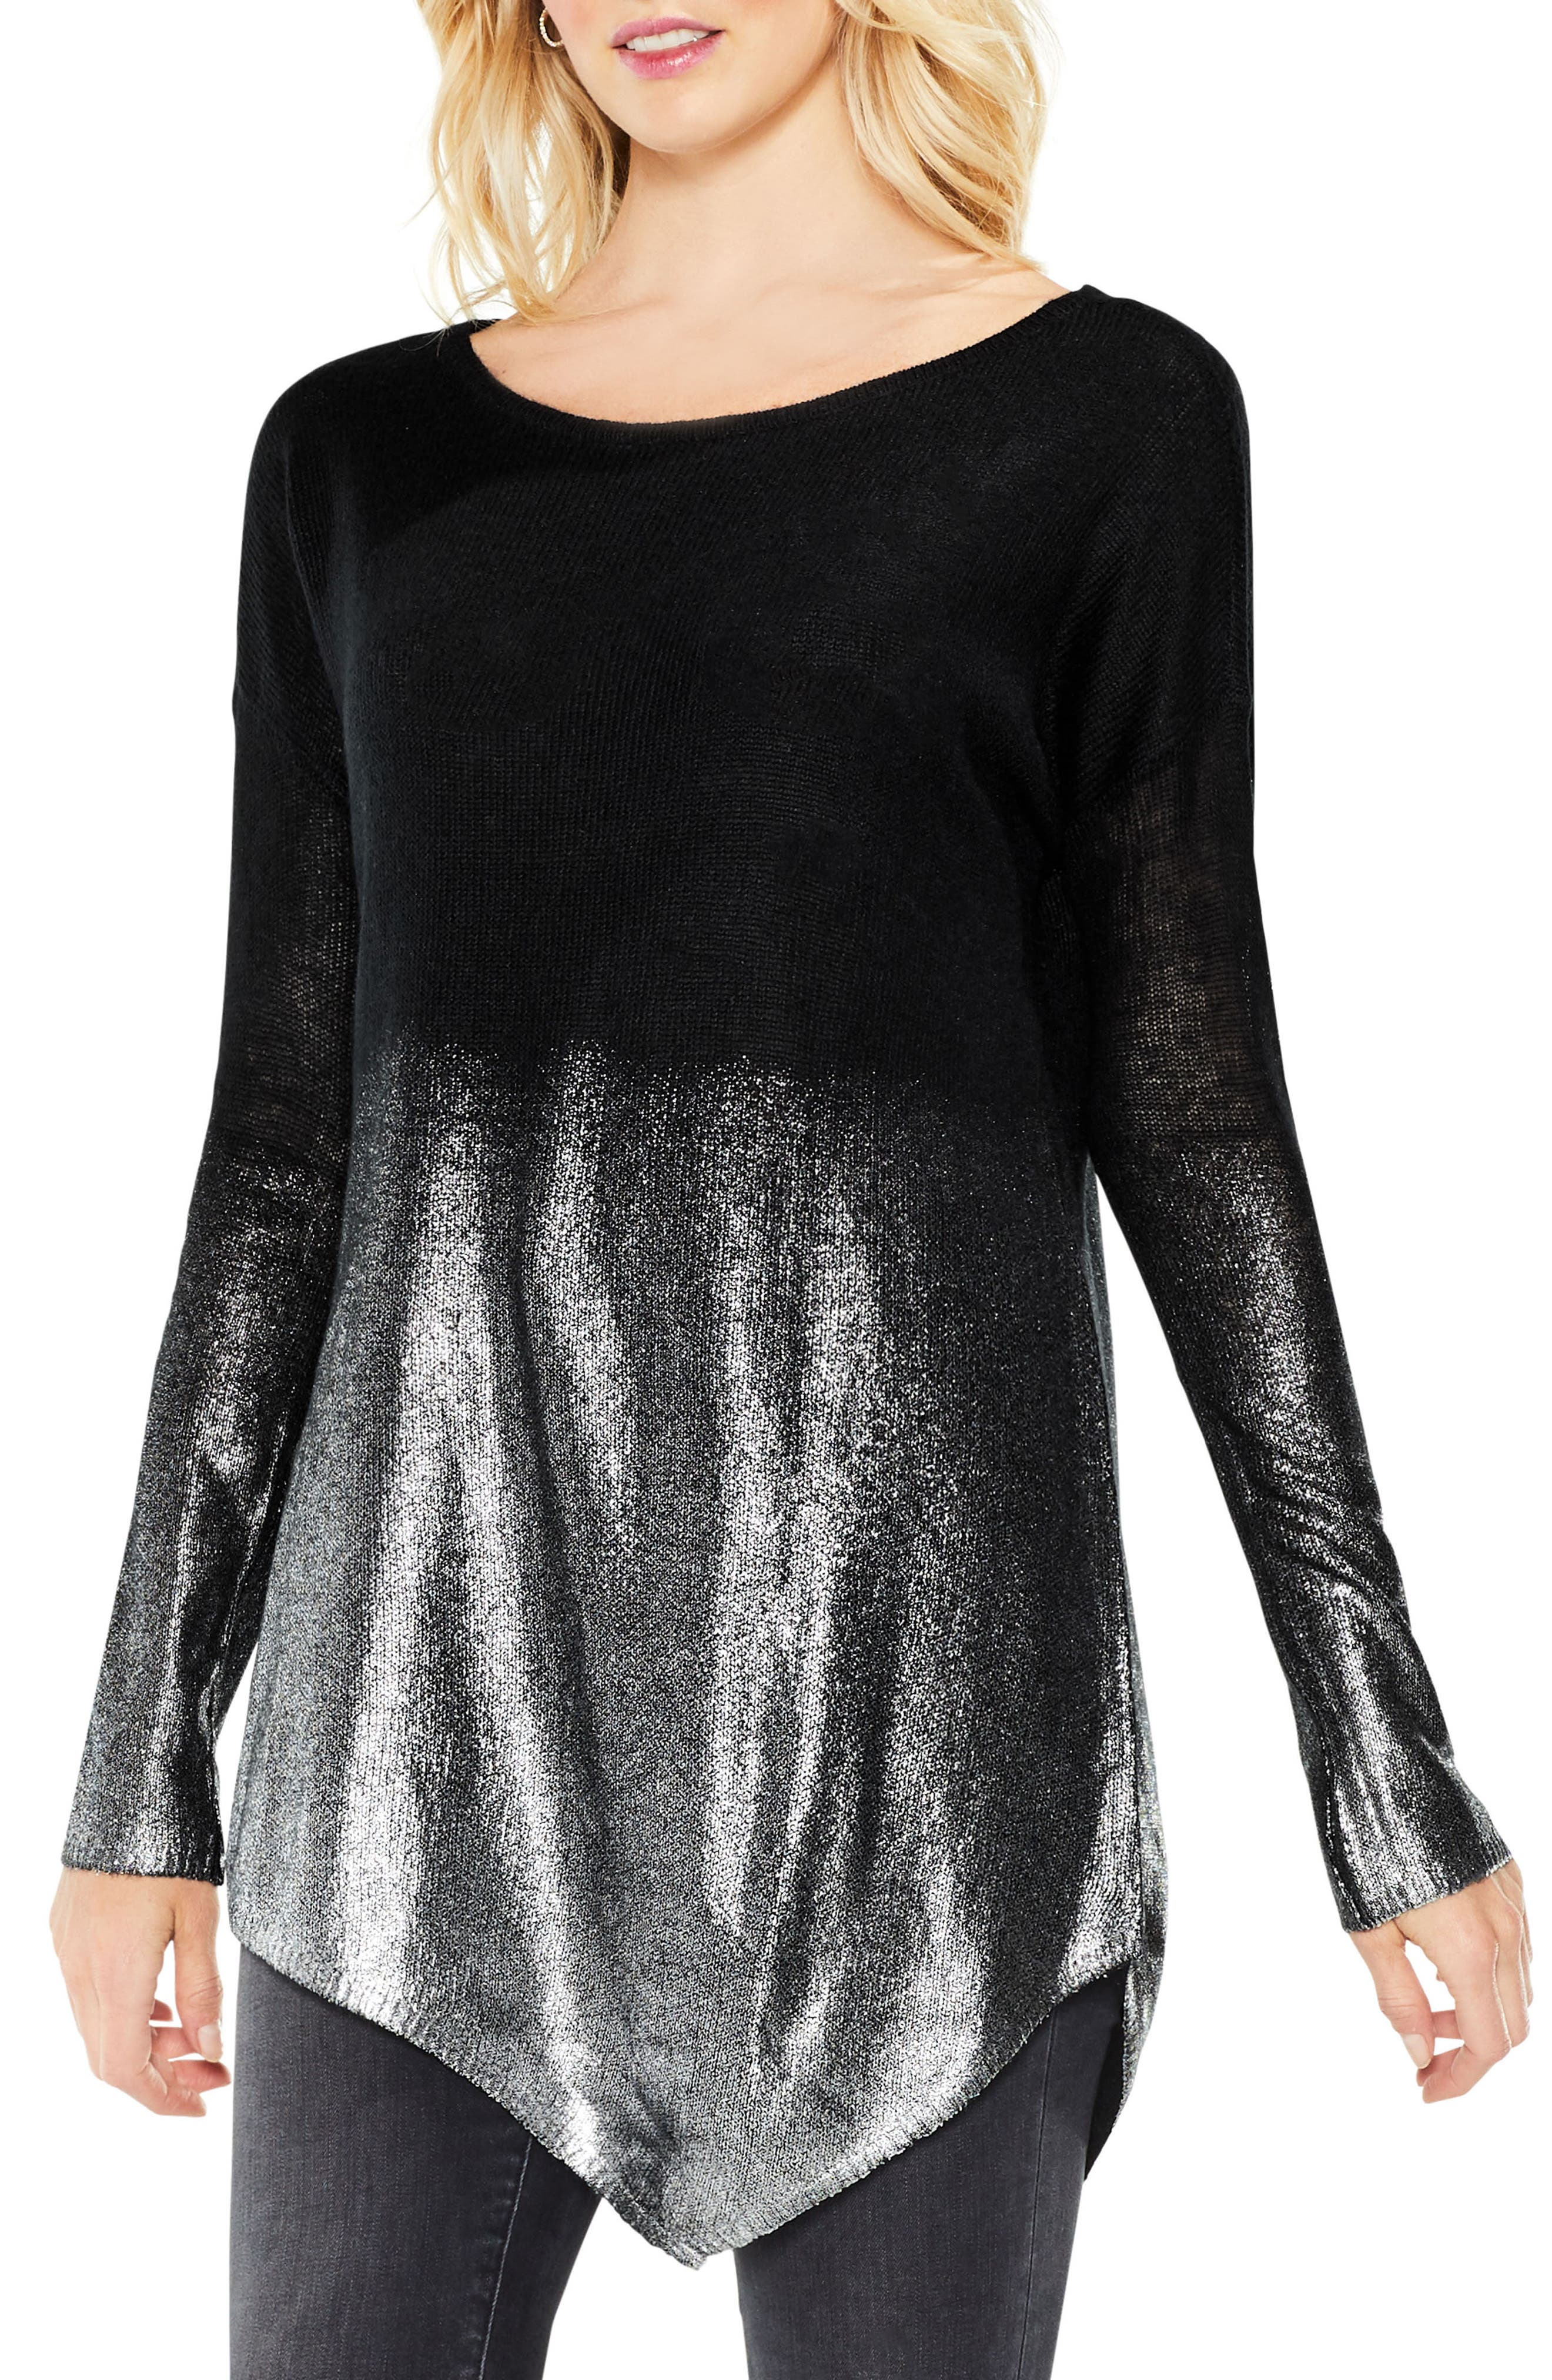 Main Image - Two by Vince Camuto Asymmetrical Metallic Ombré Sweater